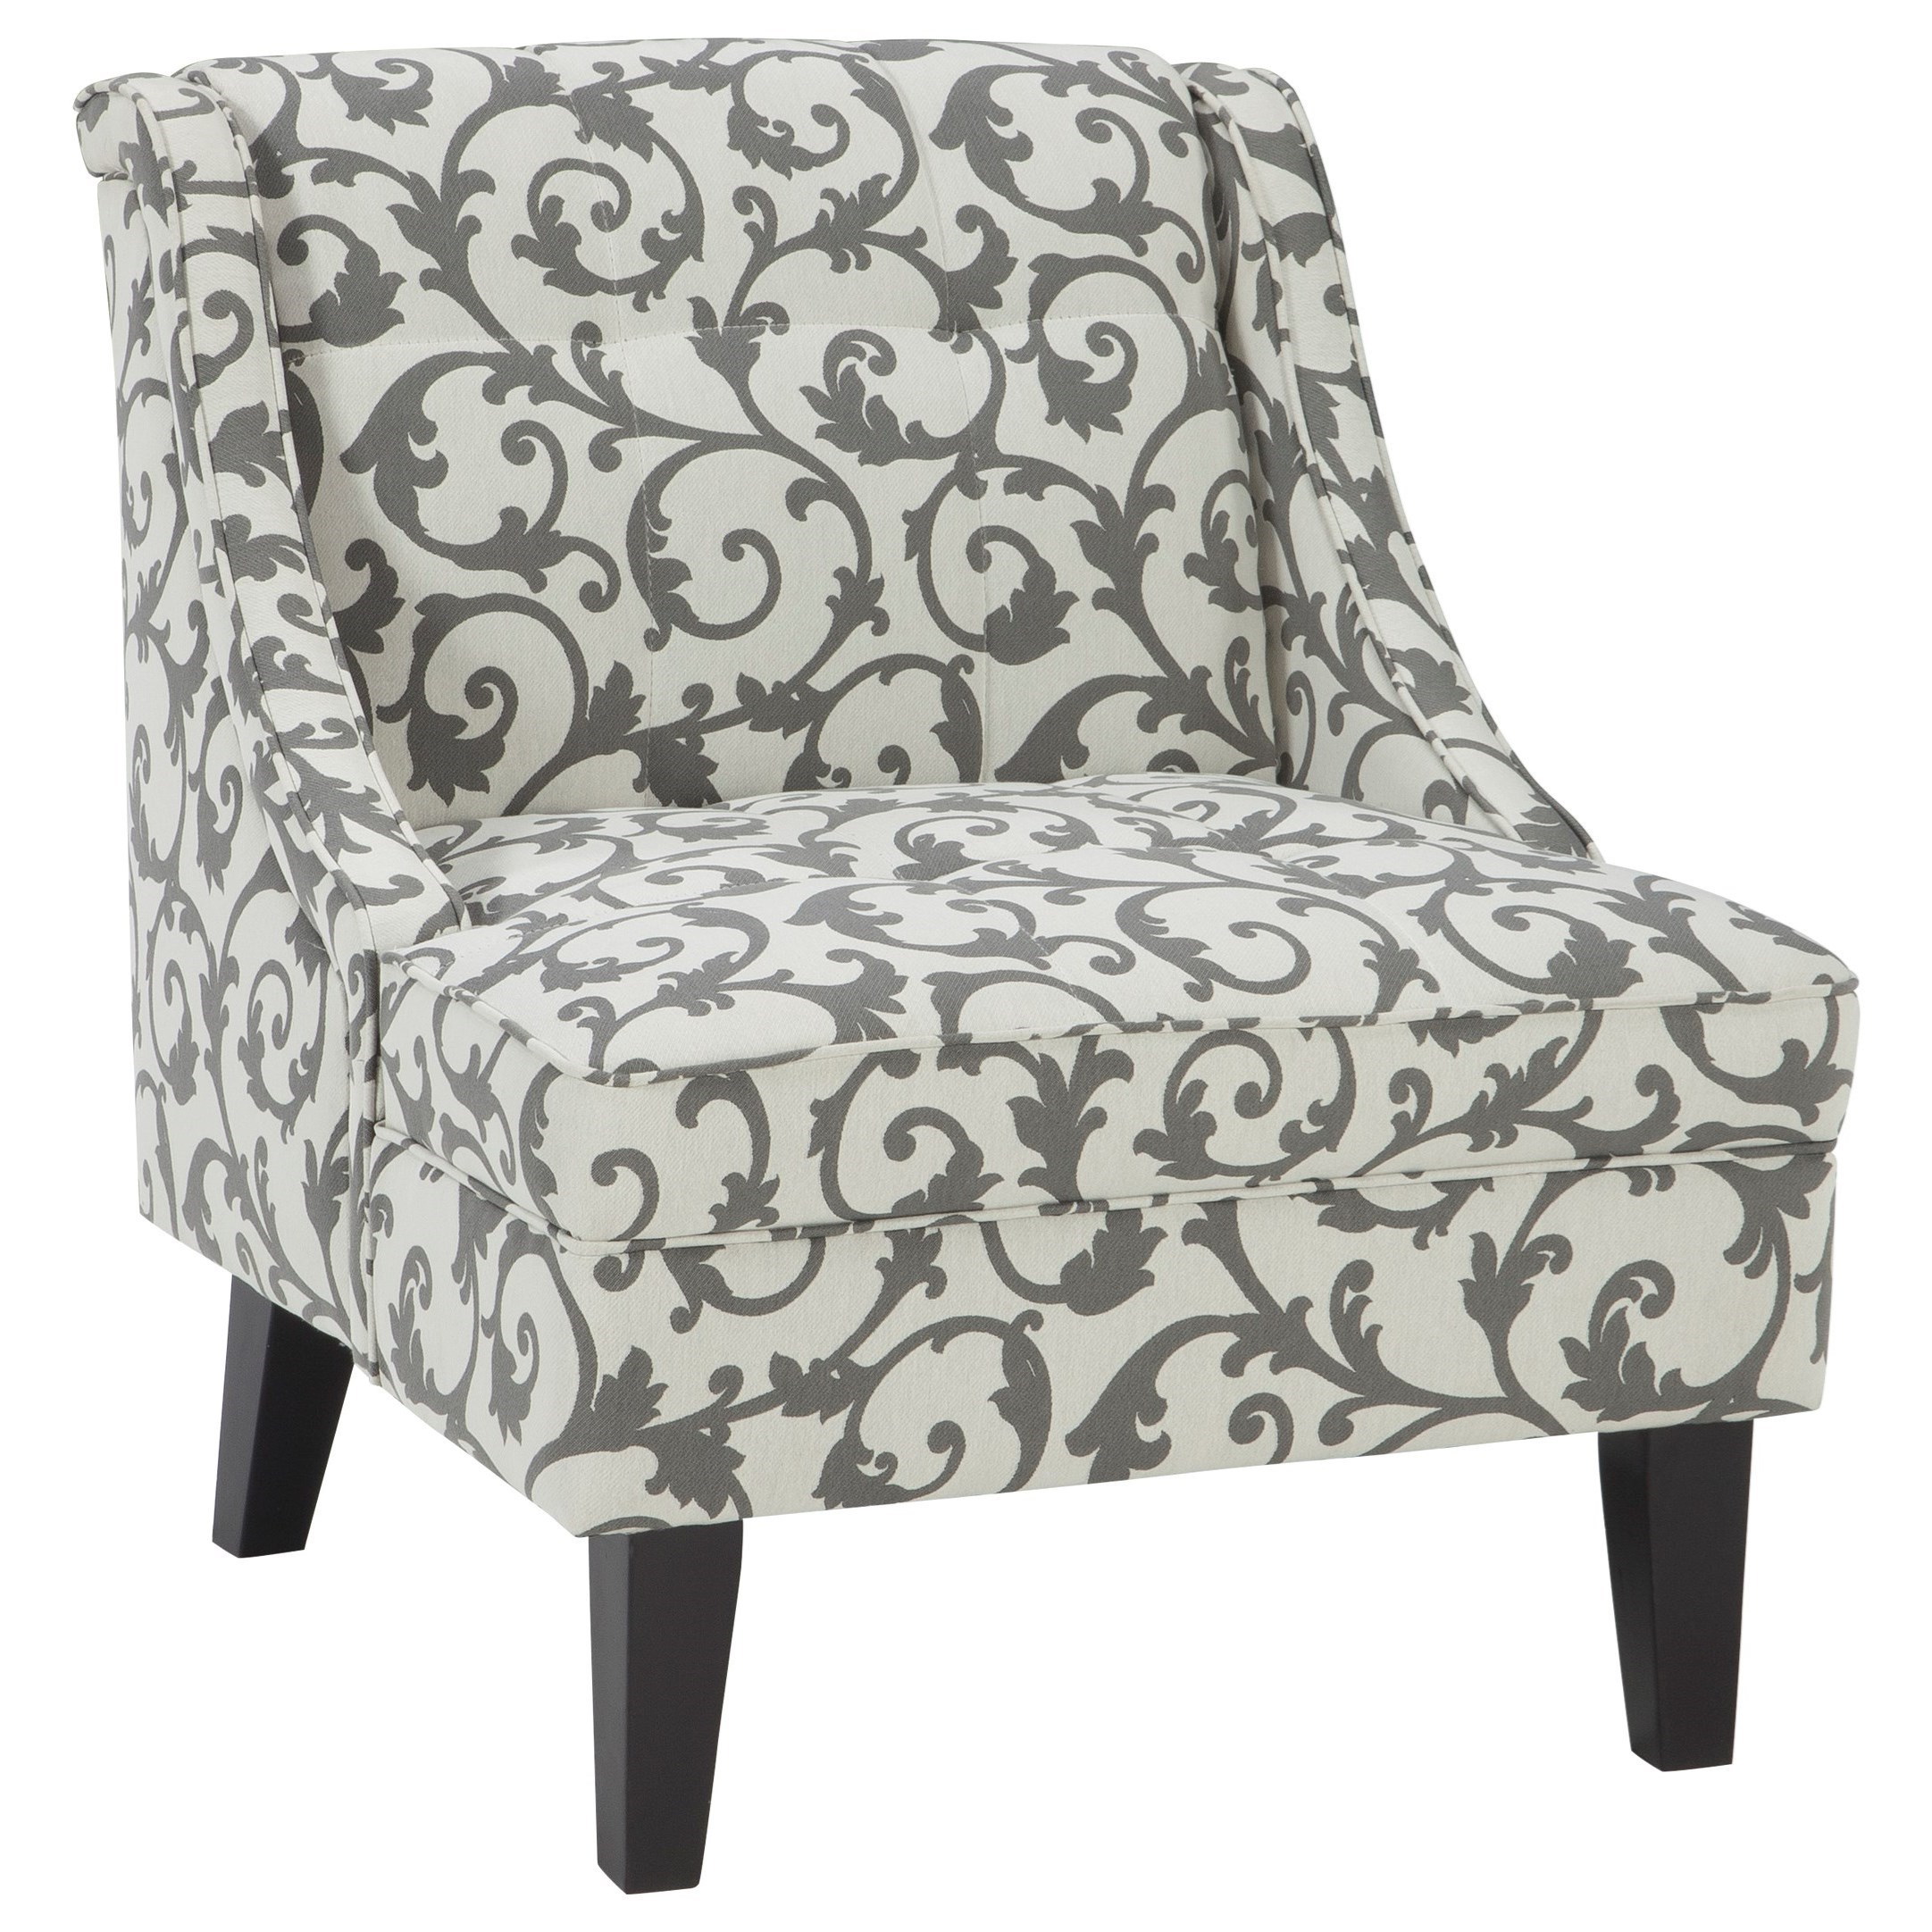 Ashley furniture kexlor 1050160 accent chair furniture for Ashley furniture appleton